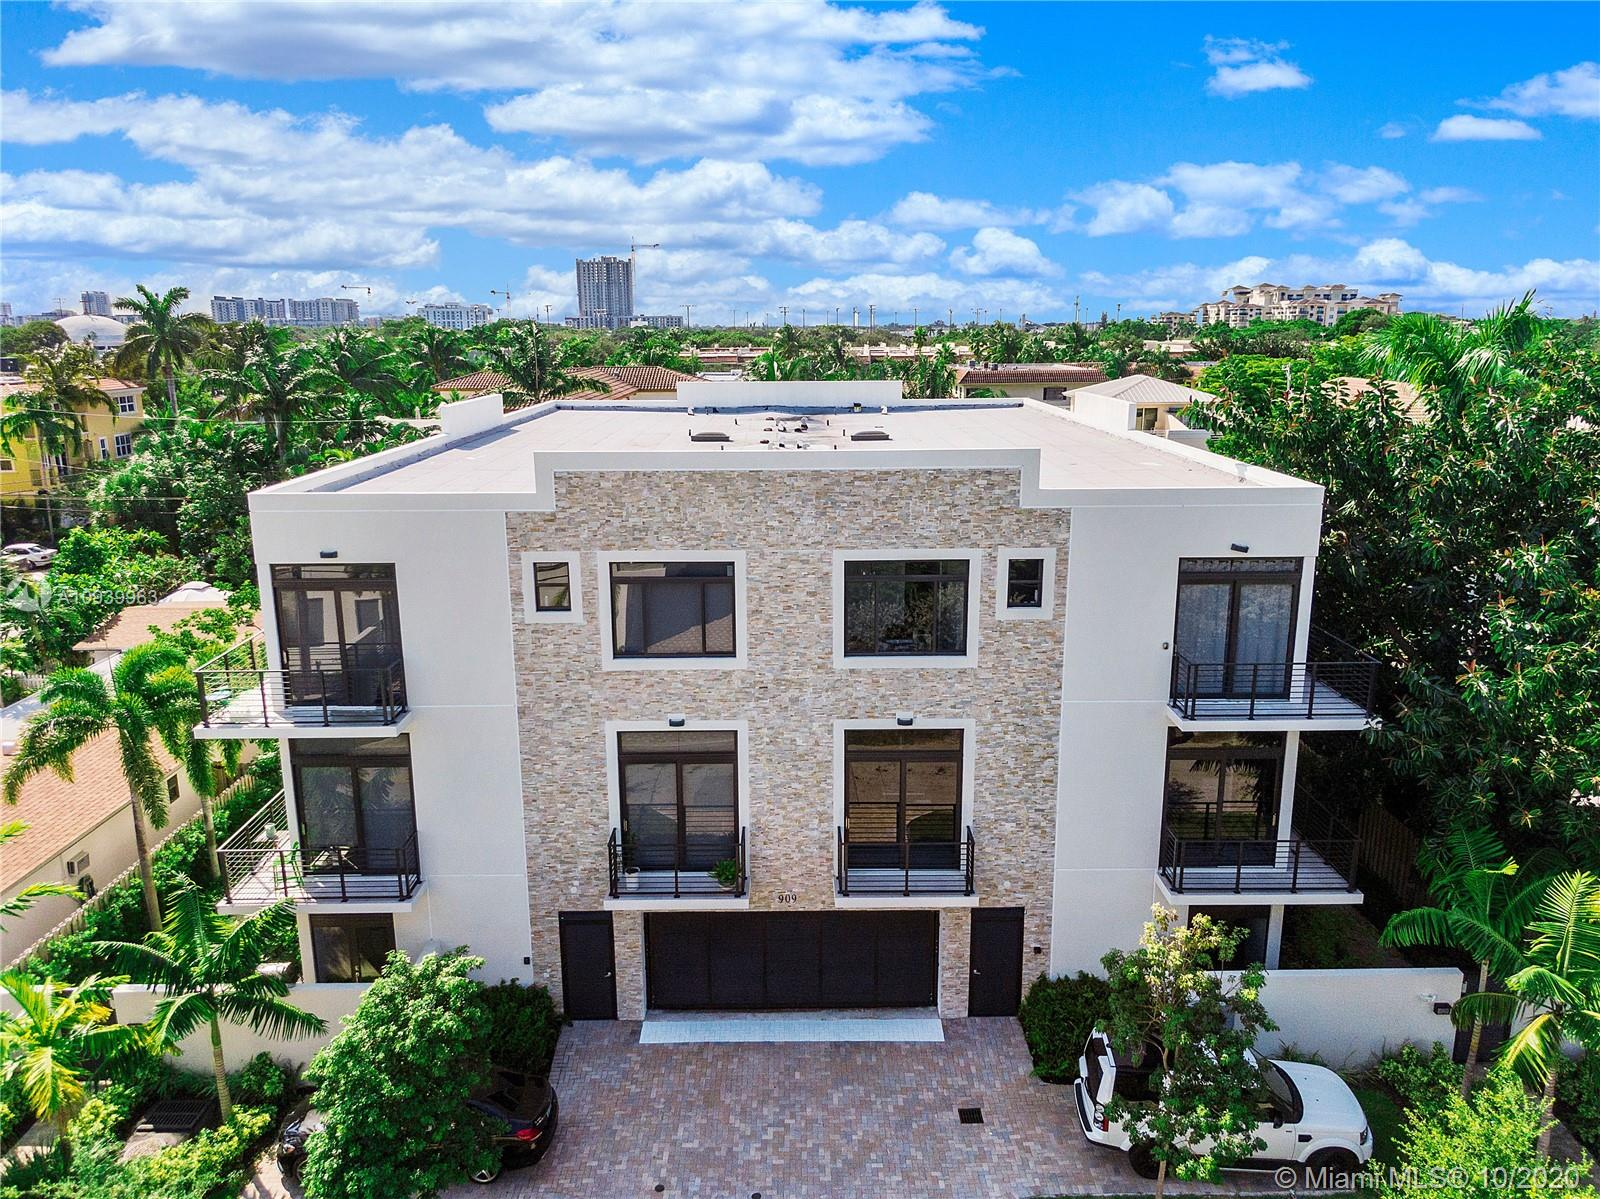 New construction in the heart of Fort Lauderdale's Victoria Park offers luxury in this sleek, contemporary tri-level townhome. Light, open and spacious three bedroom floorplan with two full and one half baths is accented with high quality finishes, Euro-style cabinetry, floating vanities, marble flooring, and Sub-Zero and Wolf appliances in the kitchen. The gated, six-unit complex affords privacy and a great location, minutes from Fort Lauderdale beaches, Las Olas shopping and dining, and the arts district. A two-car garage, plenty of storage and closet space, private entry and balconies and the ambiance of old Fort Lauderdale make this Seven Seas home in east Fort Lauderdale a desirable address and a sound investment opportunity.